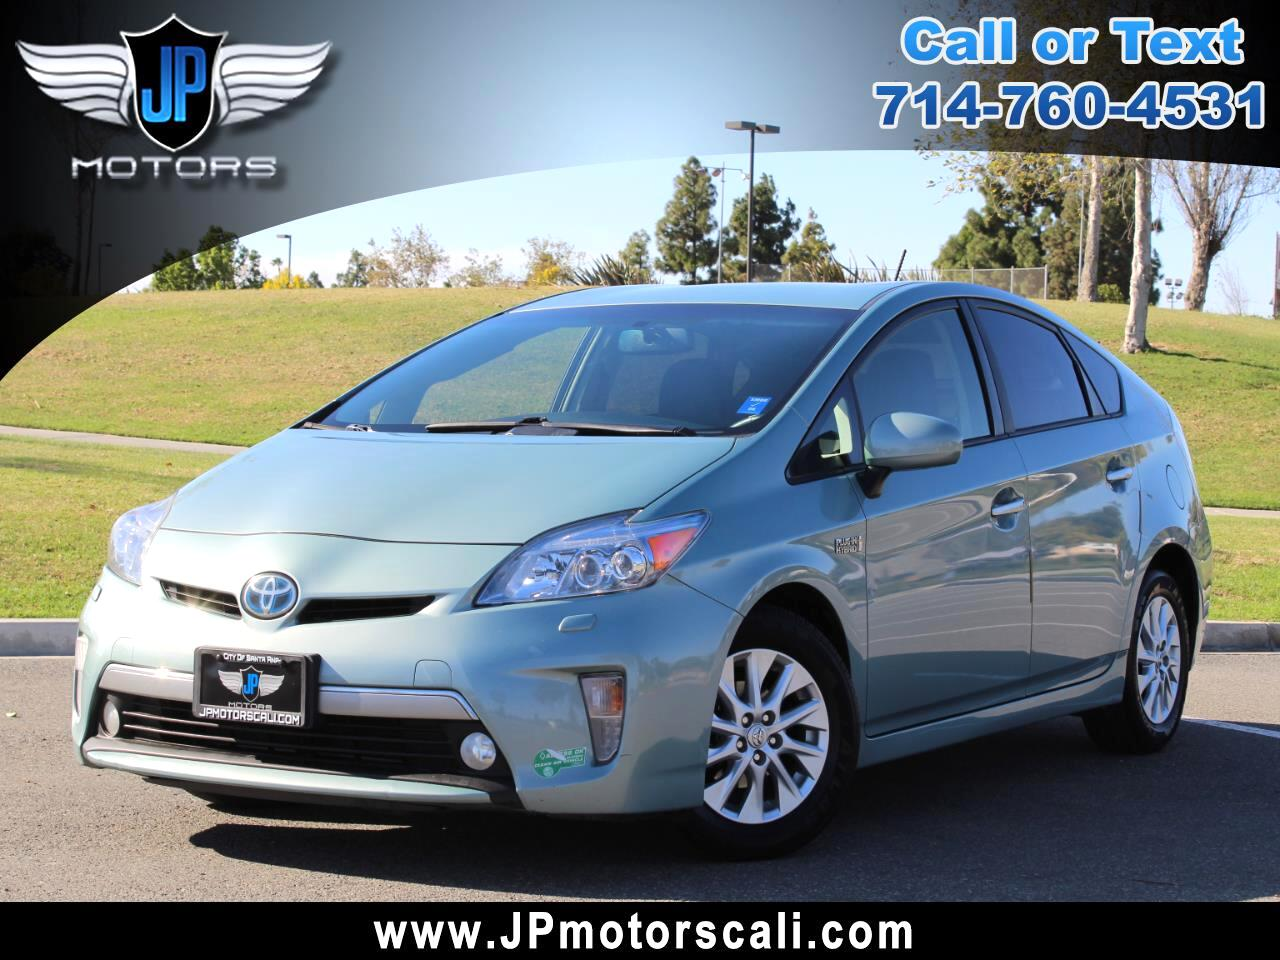 2012 Toyota Prius Plug-In 5dr HB Advanced (Natl)